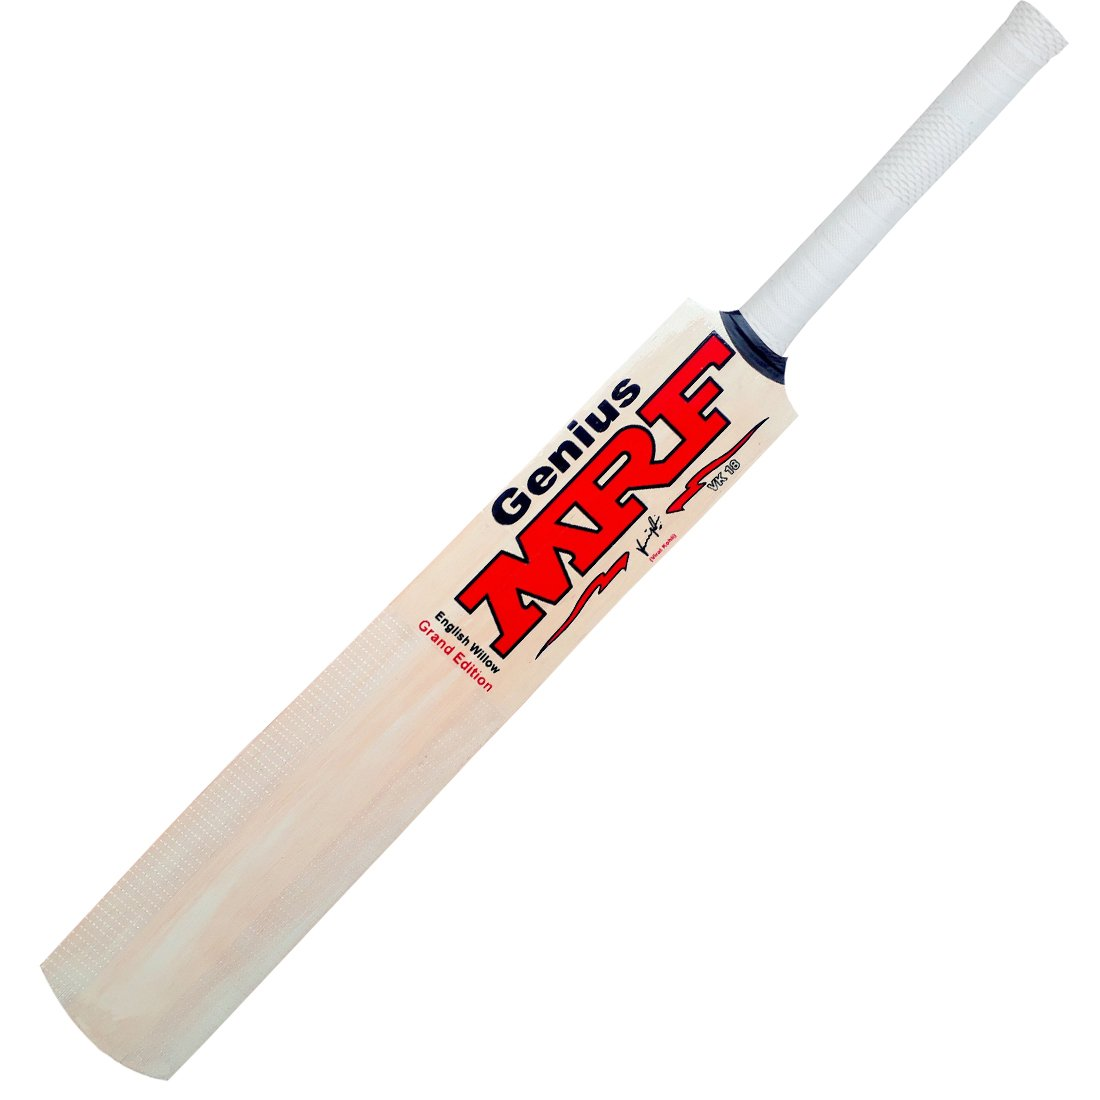 MRF Genius Virat Kohli English Willow Cricket Bat